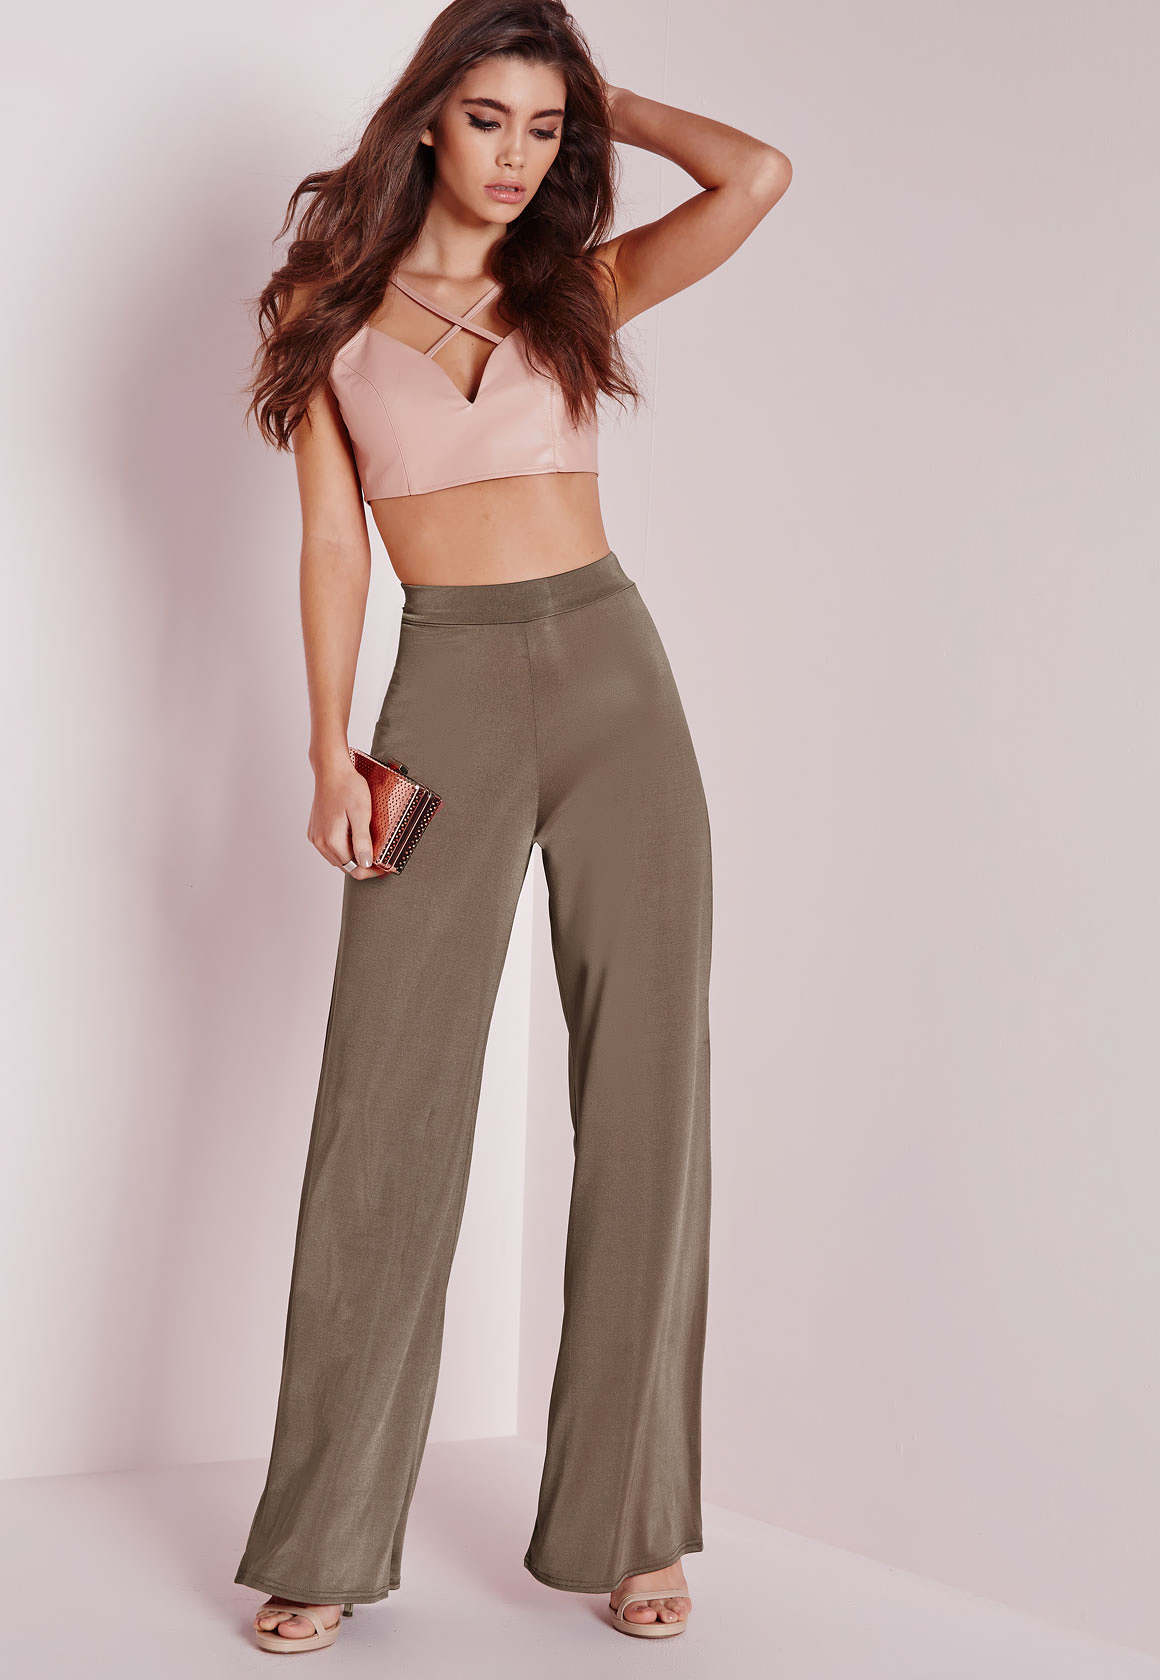 sold worldwide save up to 80% authorized site Missguided Synthetic Slinky Wide Leg Trousers Bronze in Brown - Lyst